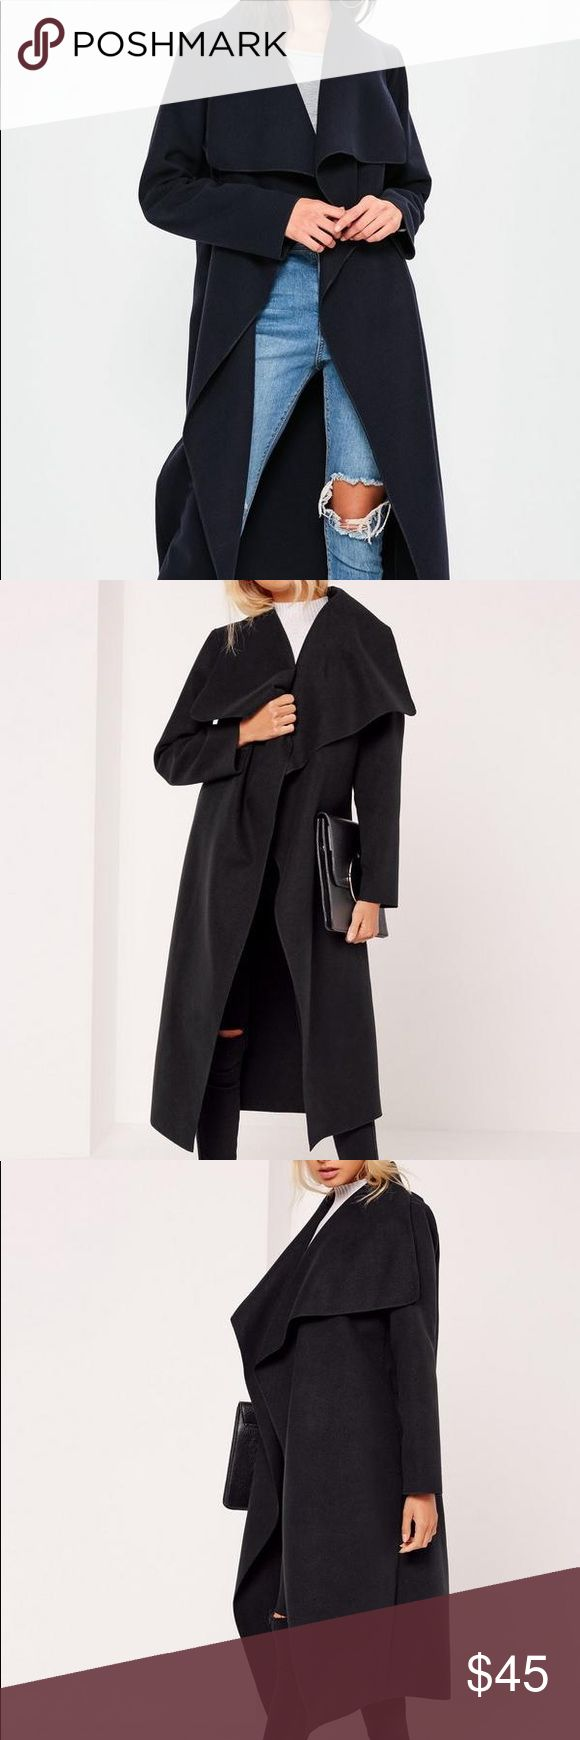 MISSGUIDED WATERFALL BLACK DUSTER COAT SZ4 MISSGUIDED BLACK WATERFALL DUSTER COAT SZ 4 BRAND NEW WITH TAGS NEVER WORN BOUGHT AT NORDSTROM A COUPLE MONTHS AGO Missguided Jackets & Coats Pea Coats